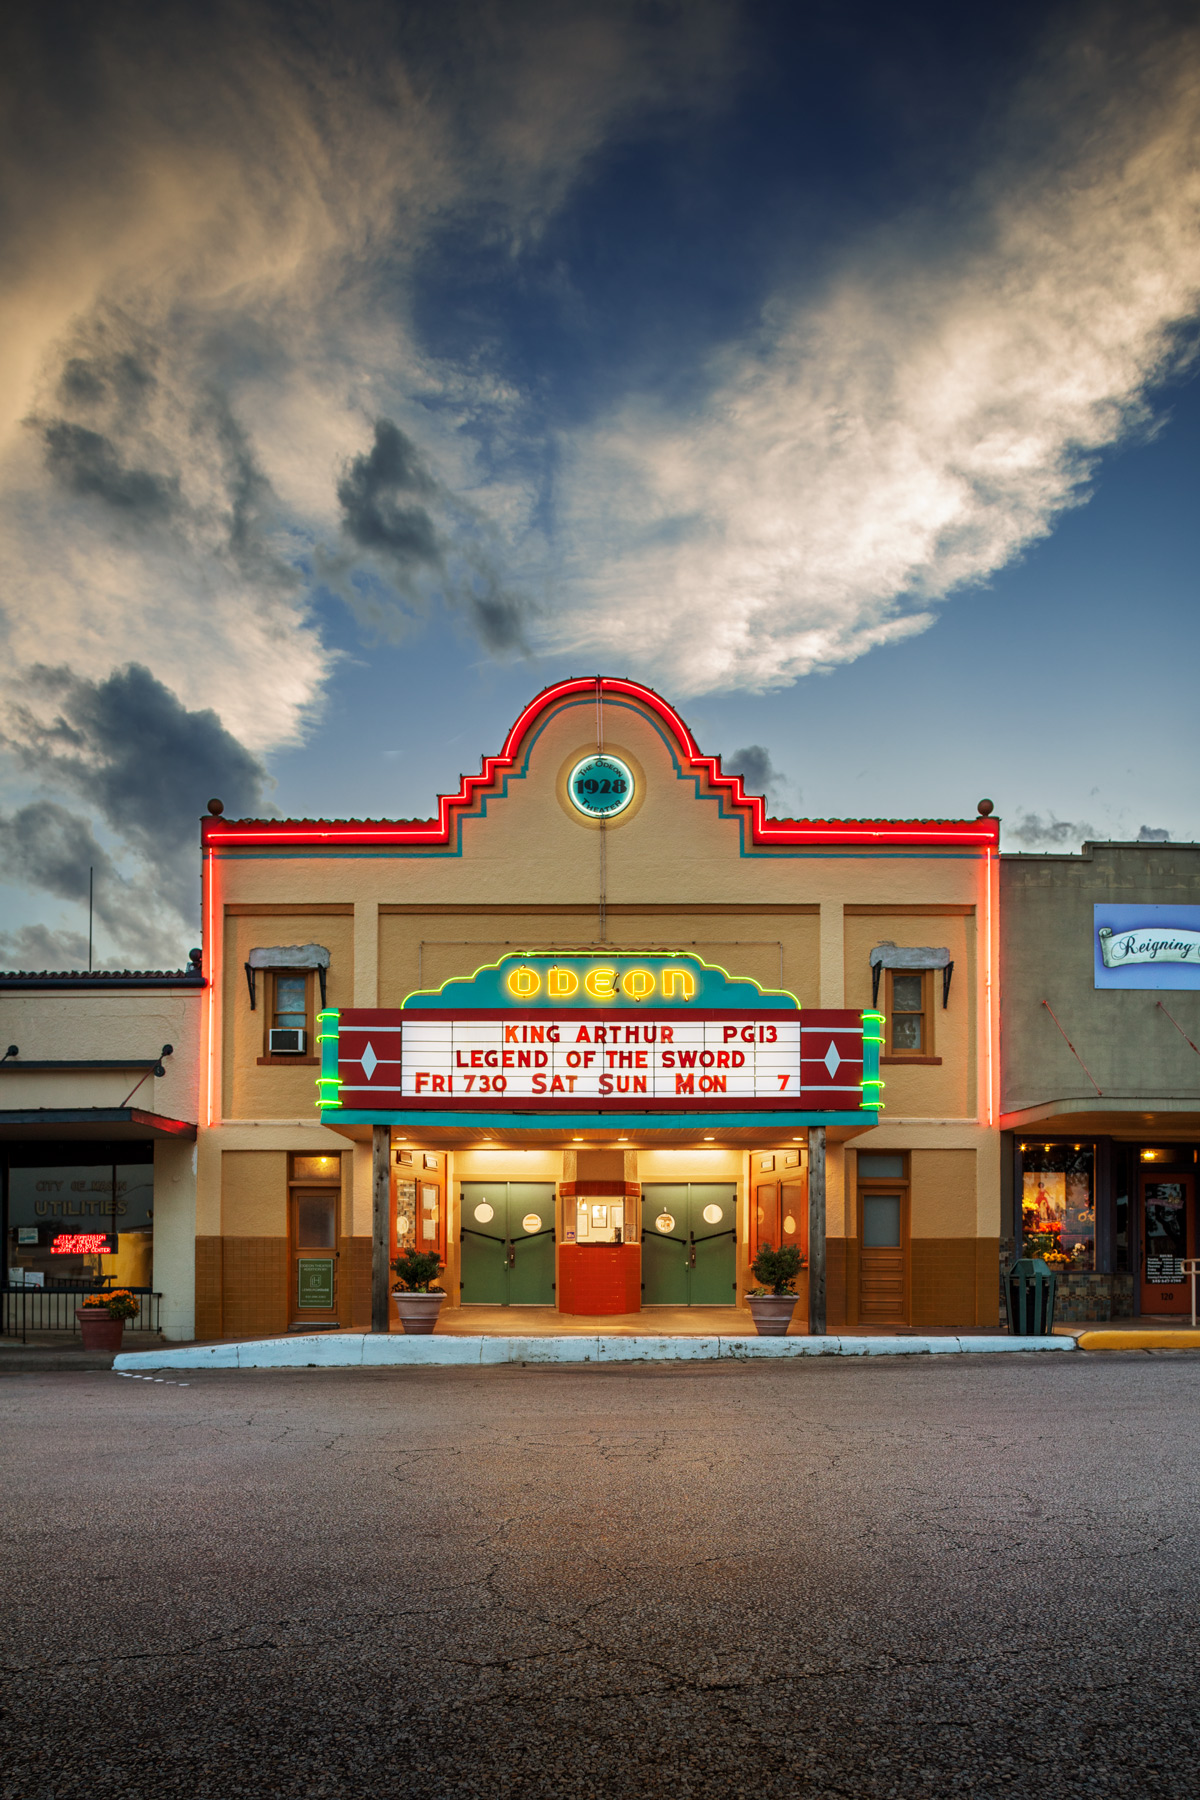 ODEON THEATER, MASON, TX